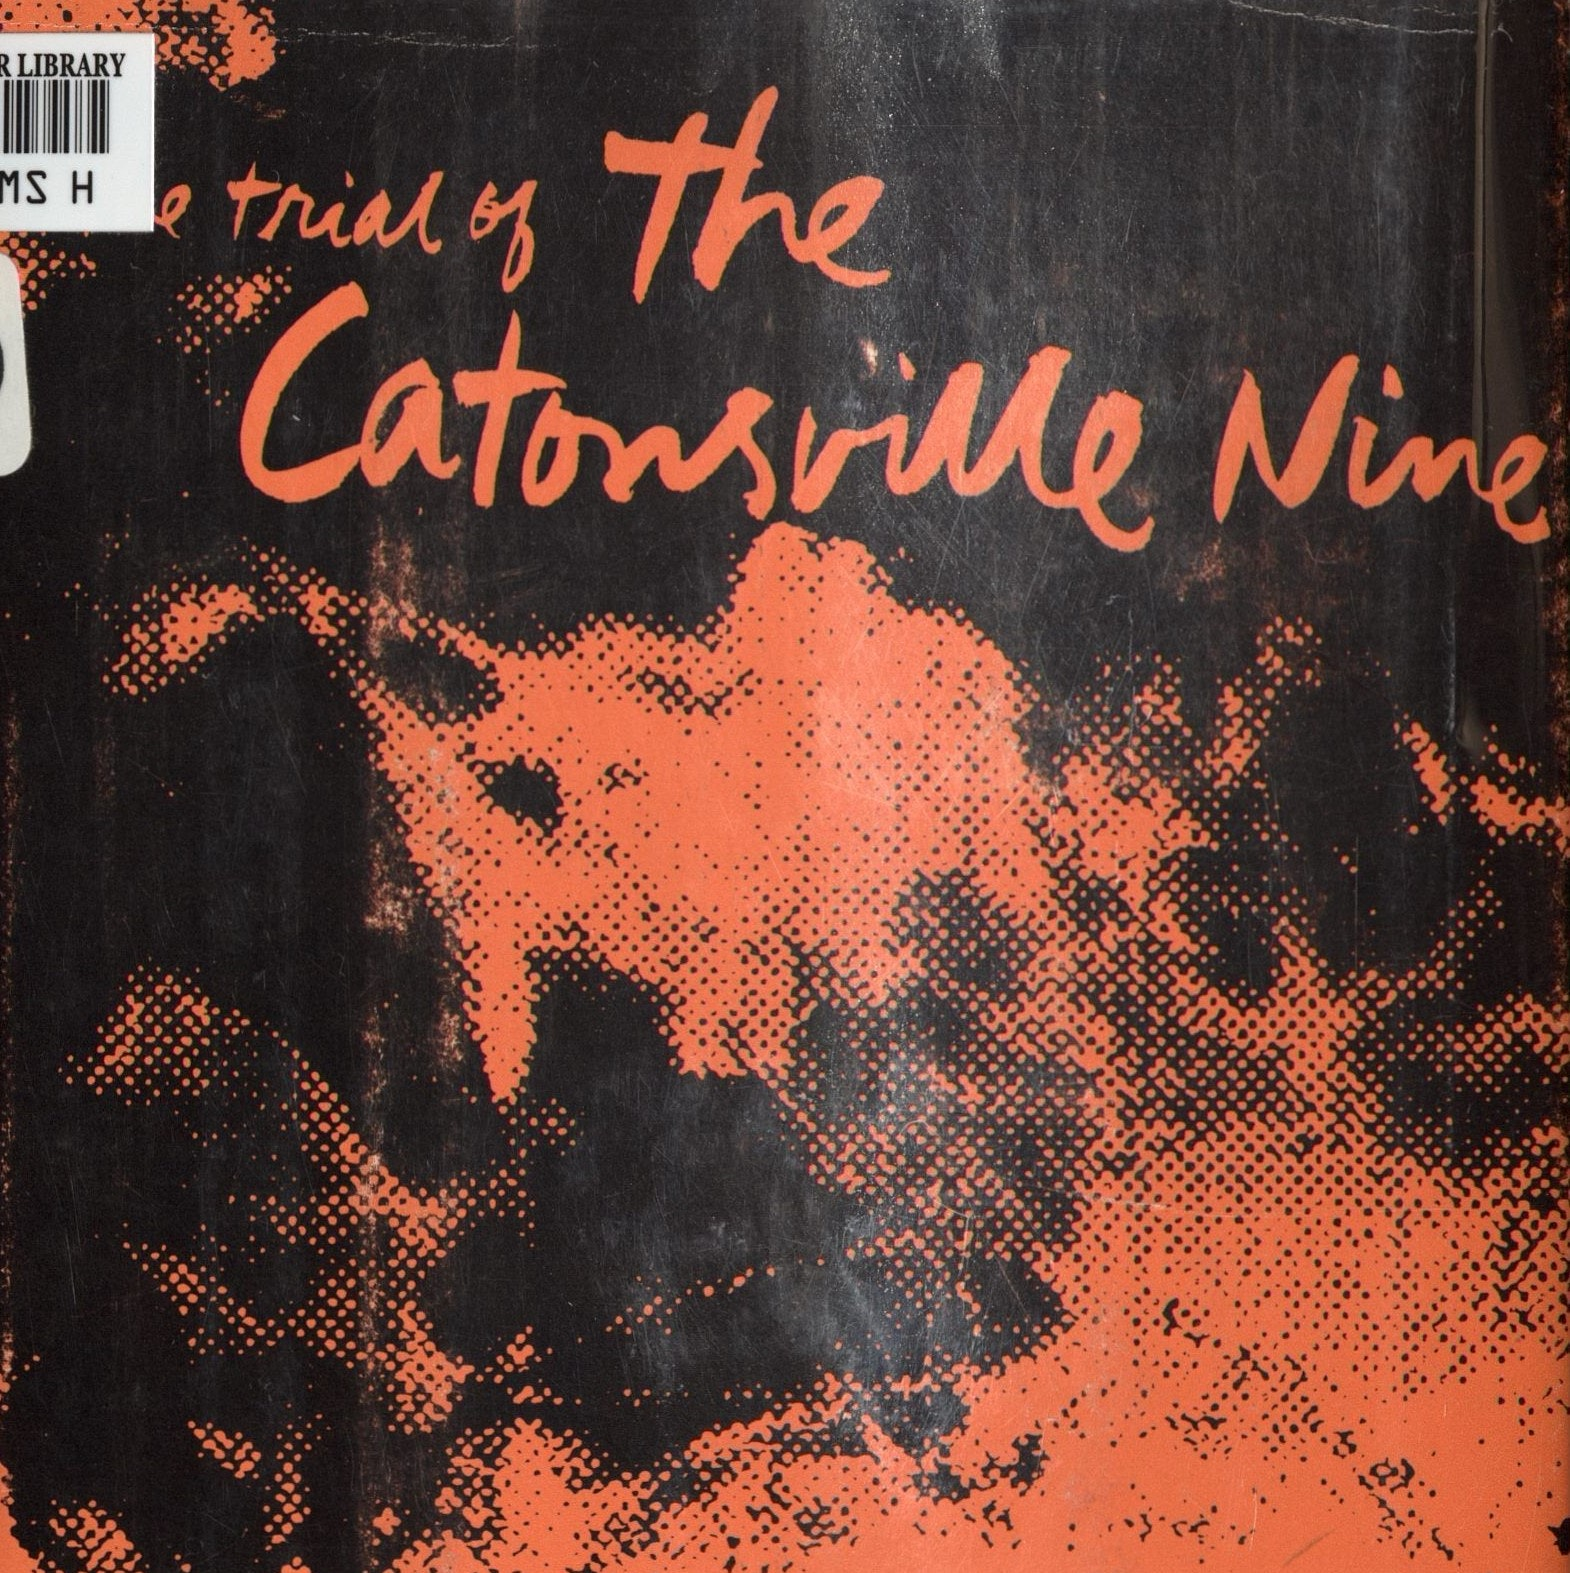 Book about the Trial of the Catonsville Nine